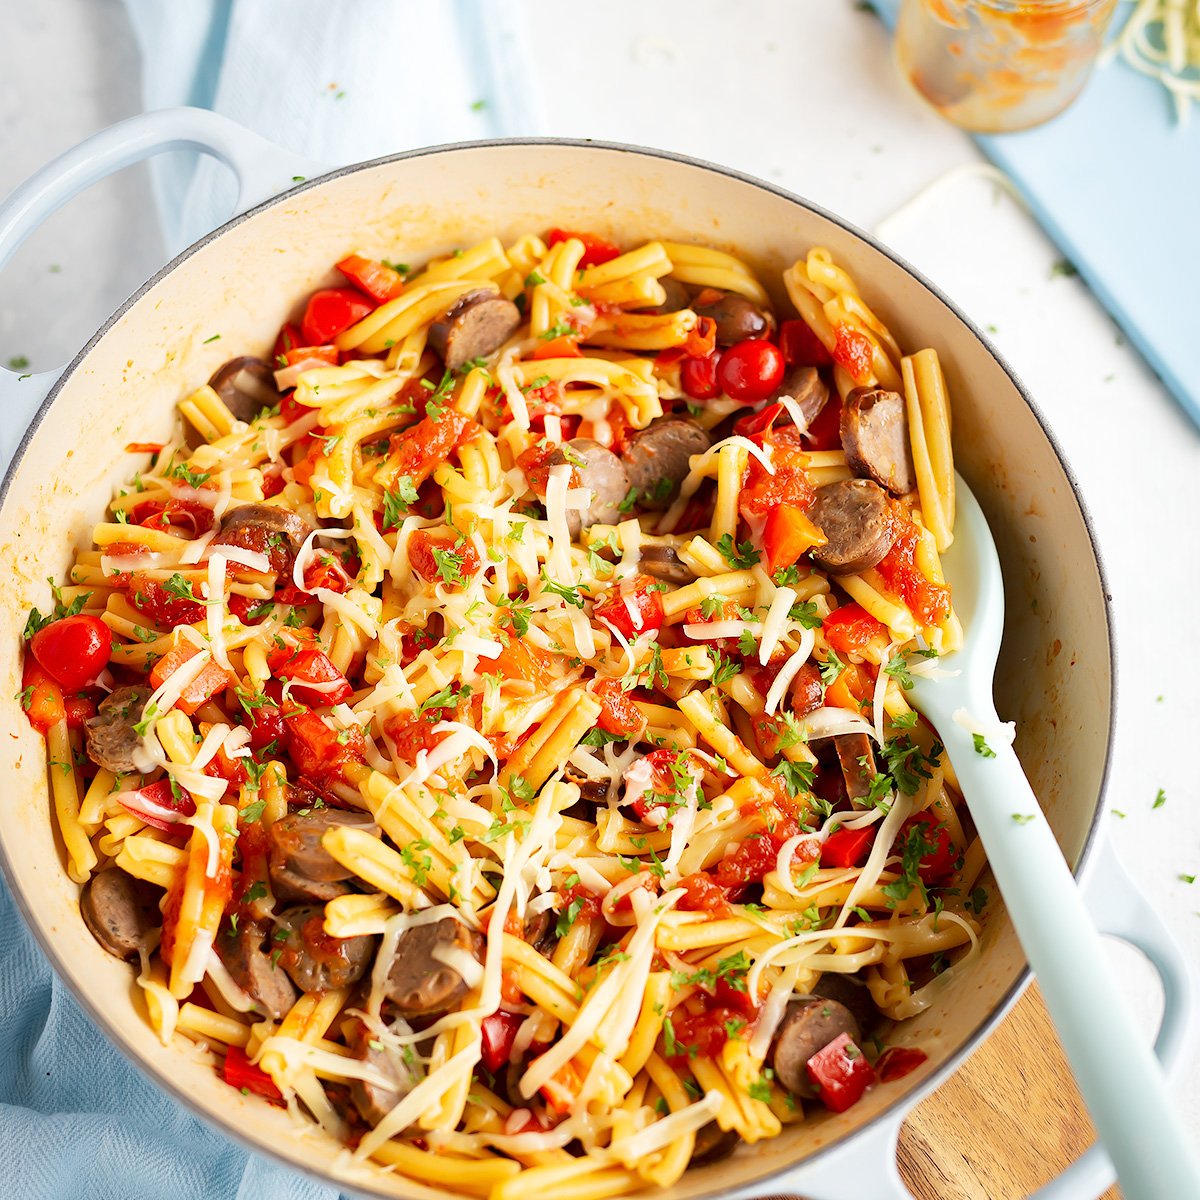 Crunch Preserves Leftover Sausage Pasta with Tomato Relish. The perfect leftover sausage recipe with simple ingredients, all made in one pot and ready in less than 20 minutes!